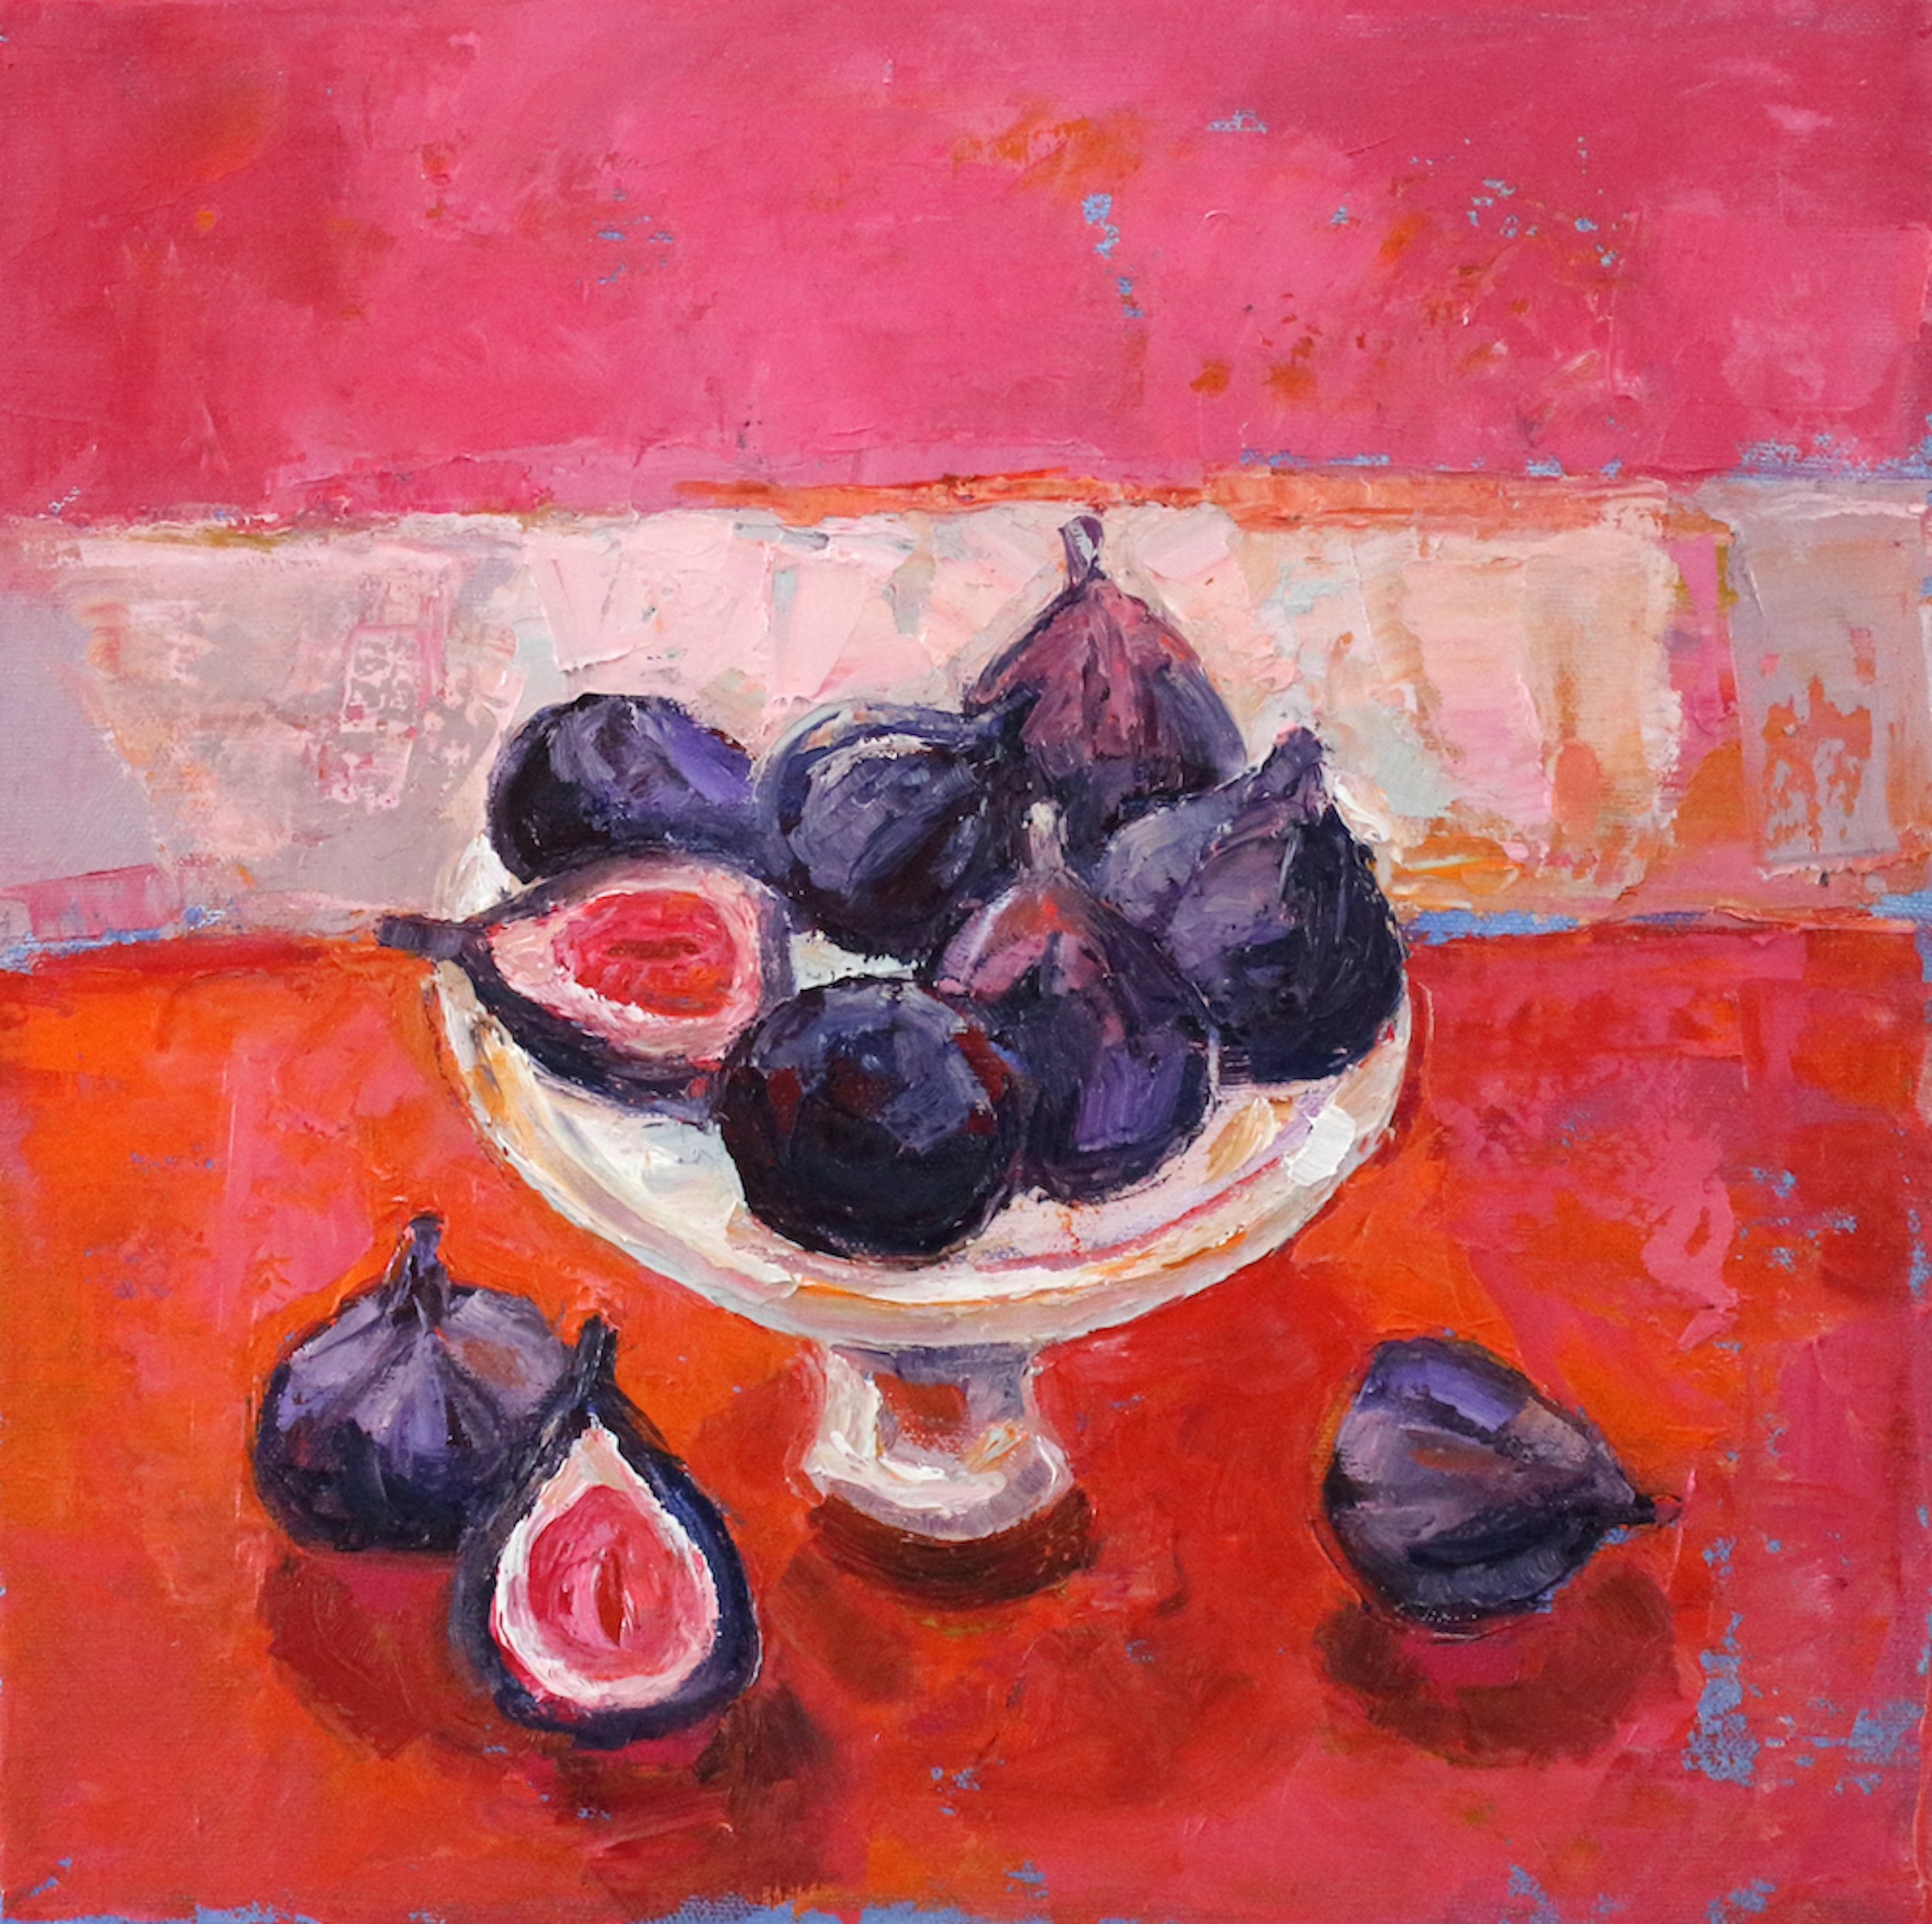 Artist: Kirsty Wither  Title: Nine Lush Figs  Size: 30cm x 30cm  Medium: oil on canvas  Price: £1750